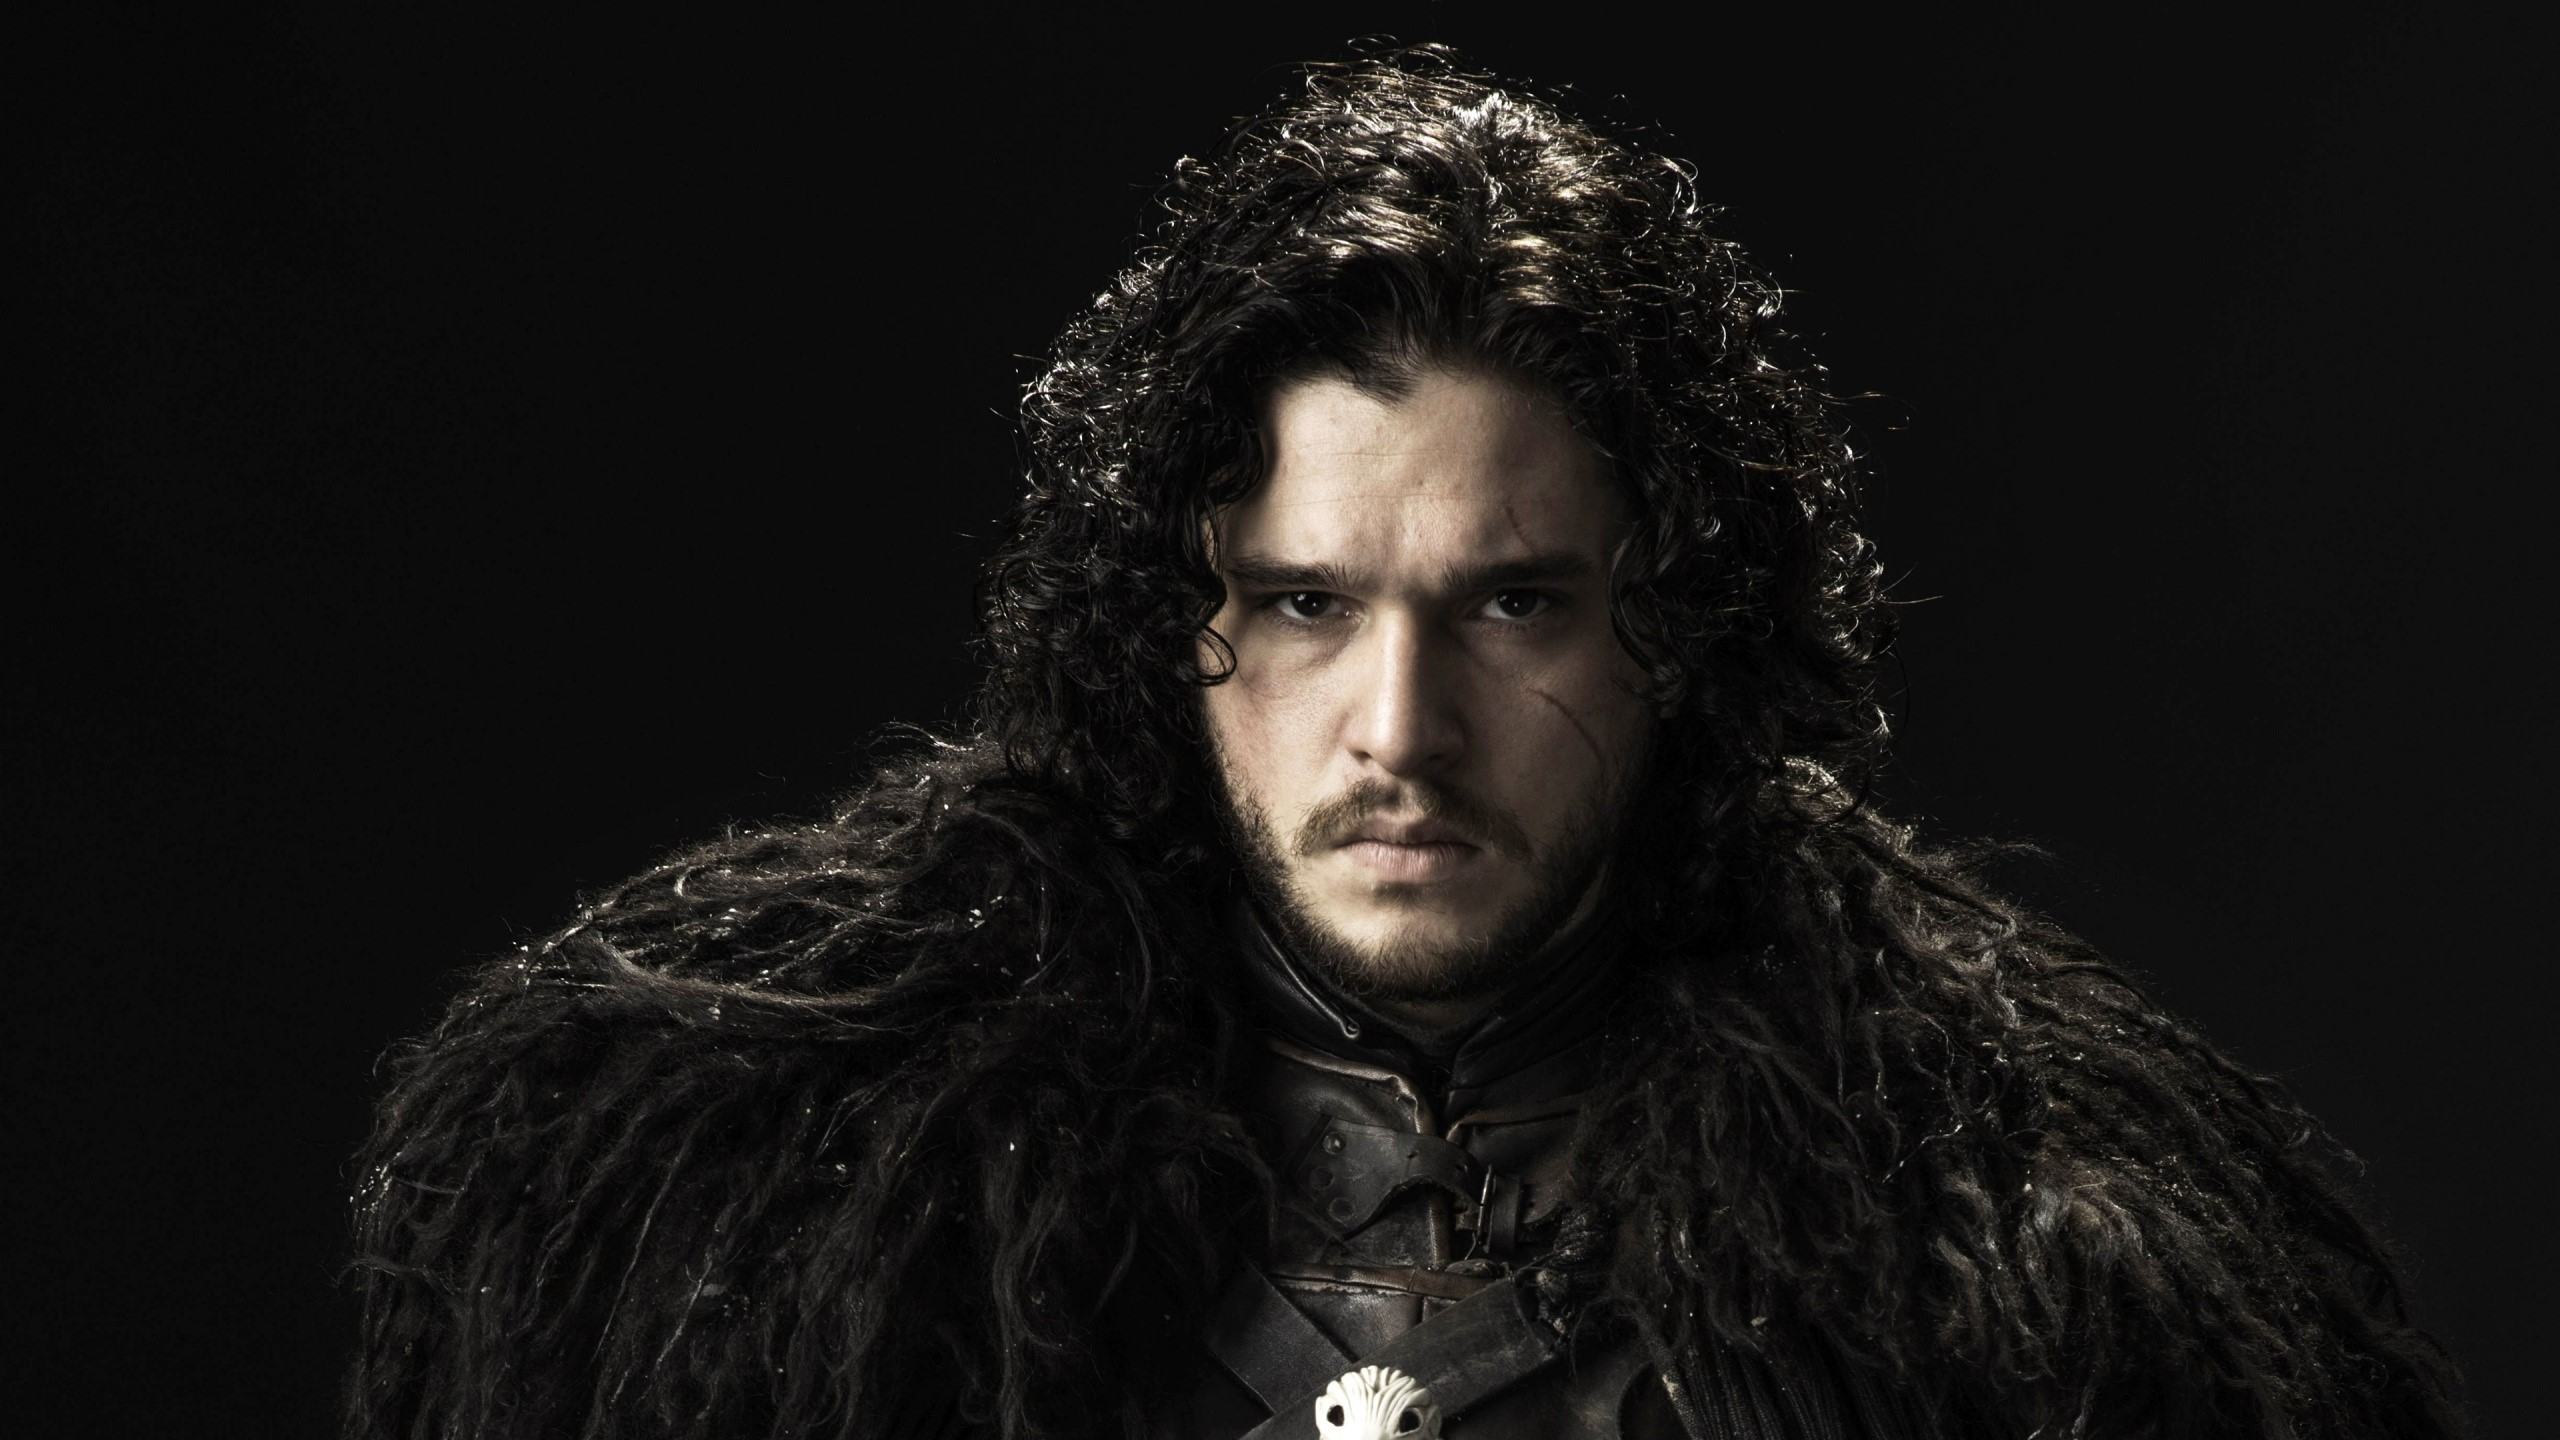 Wallpaper Kit Harington as Jon Snow